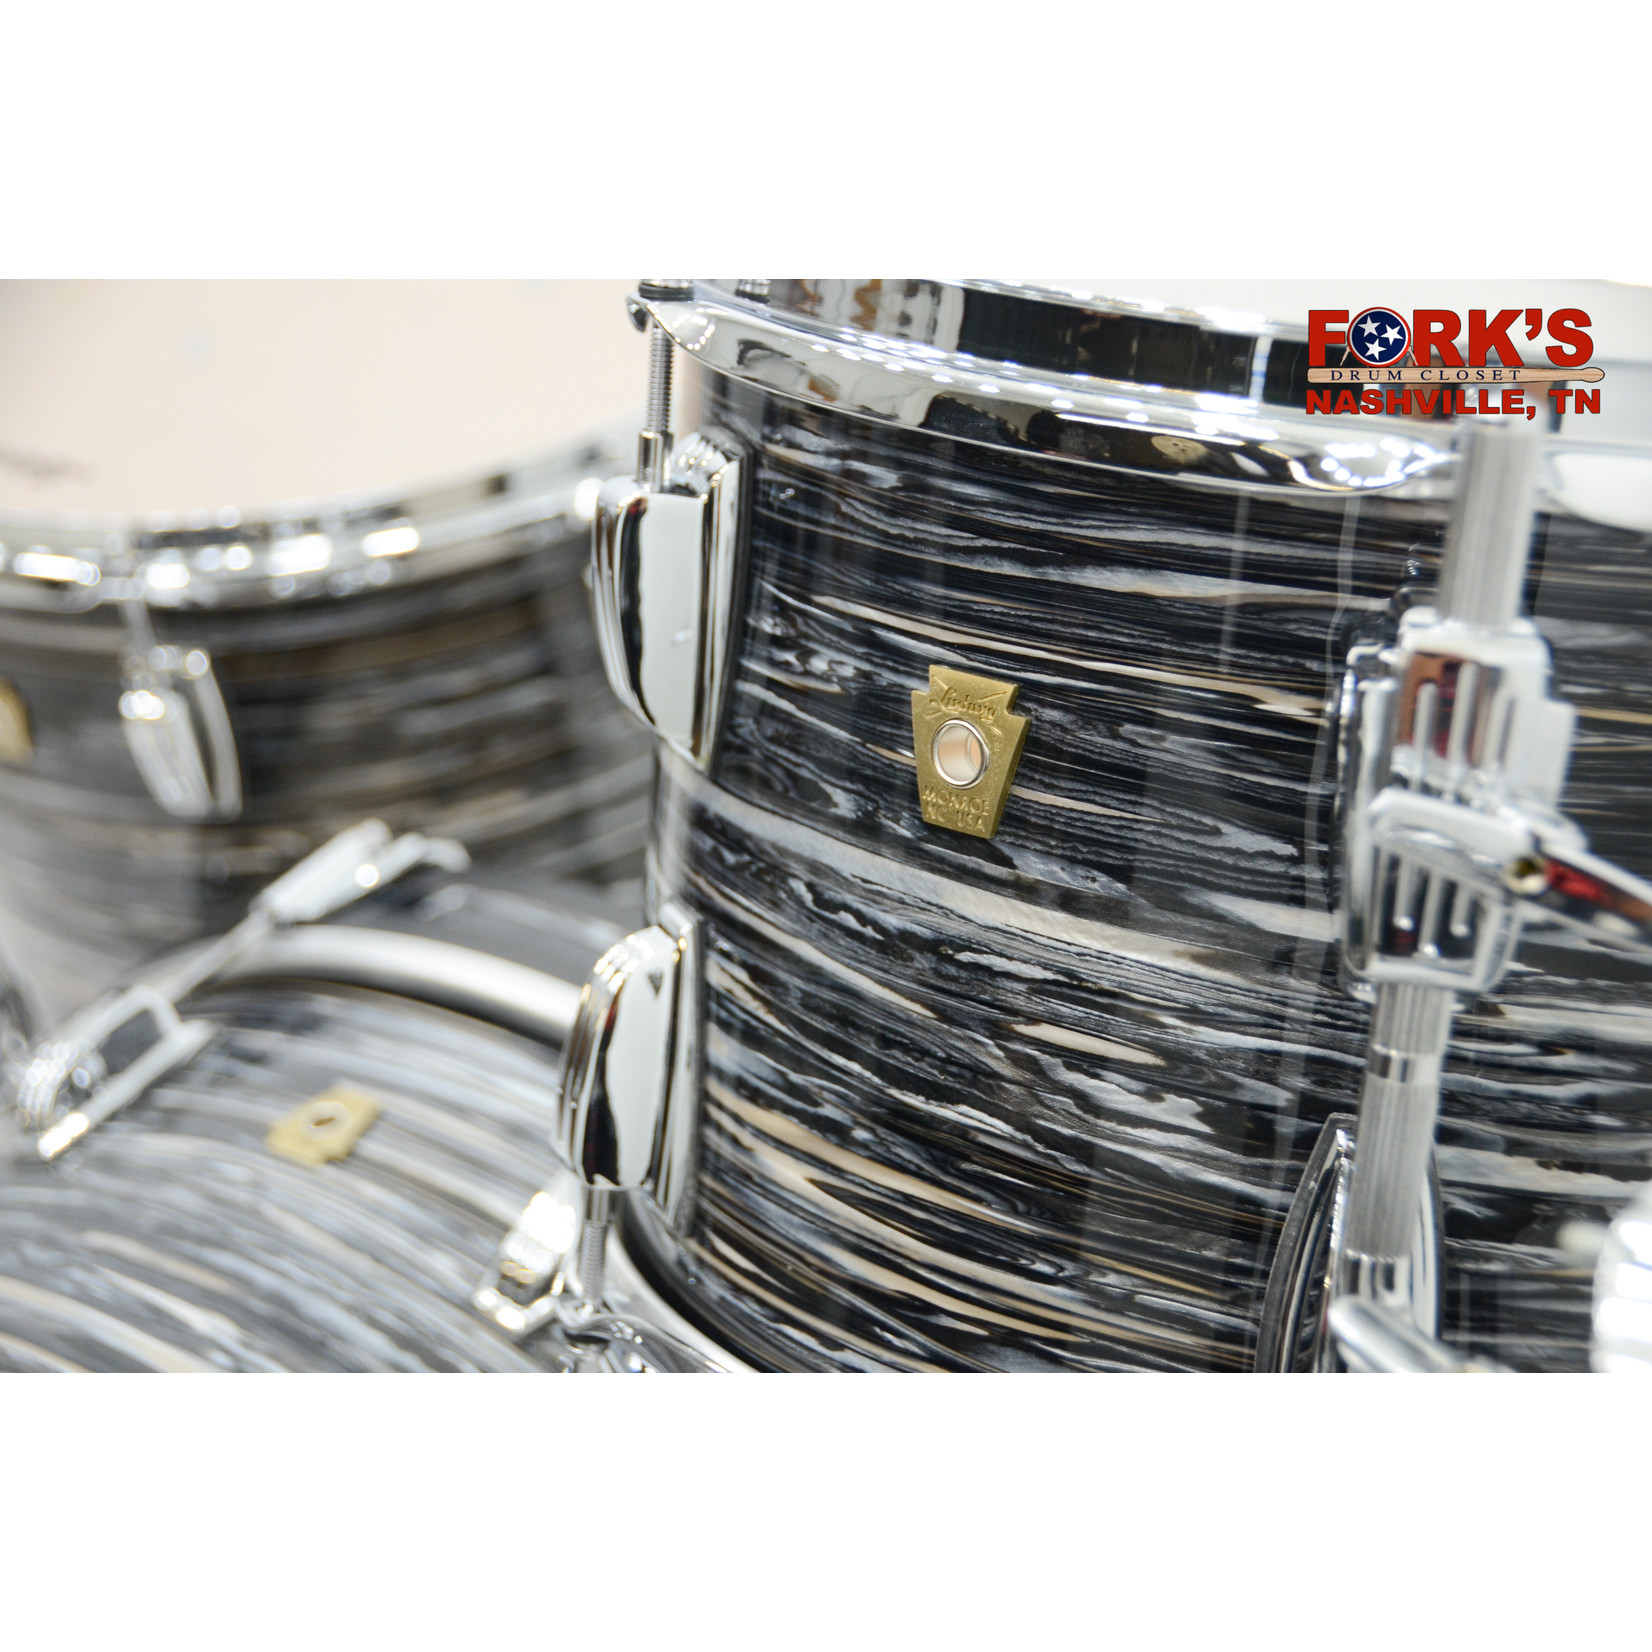 """Ludwig Ludwig Classic Maple 3pc Drum Kit """"Vintage Black Oyster"""""""